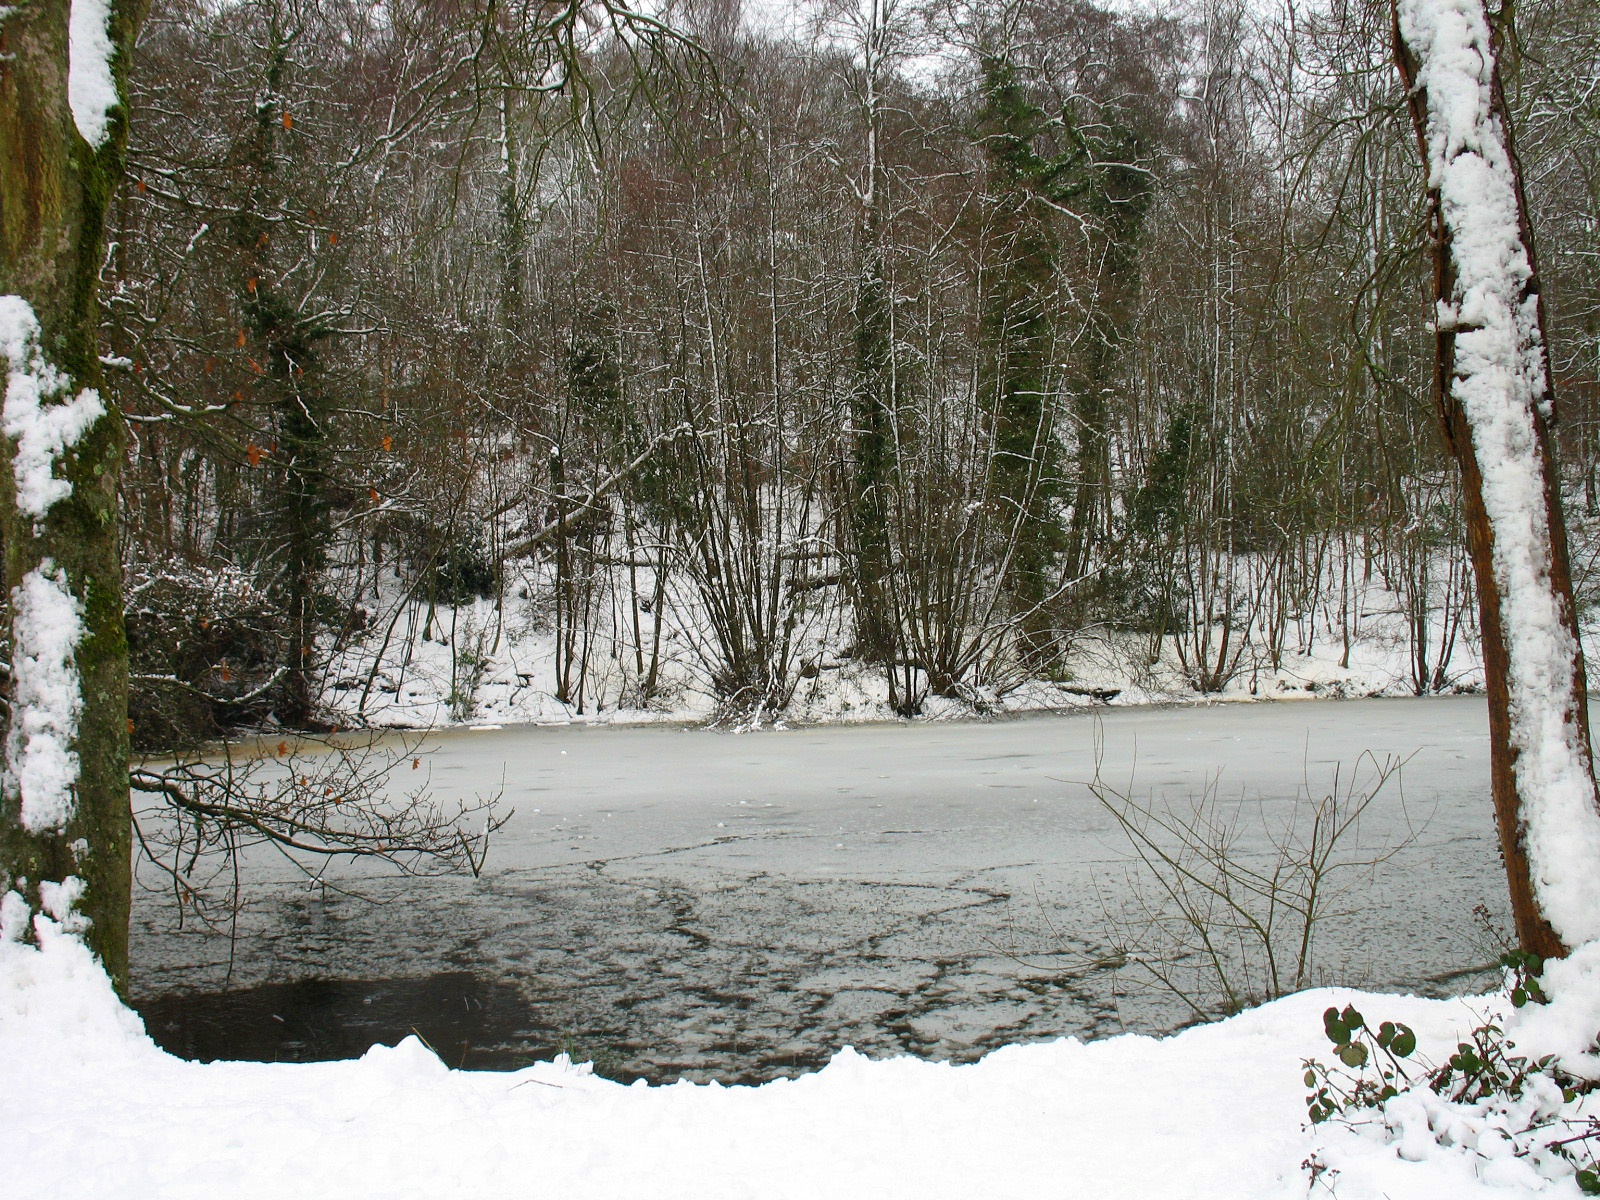 Winter at the Pond of the C.S. Lewis Nature Reserve